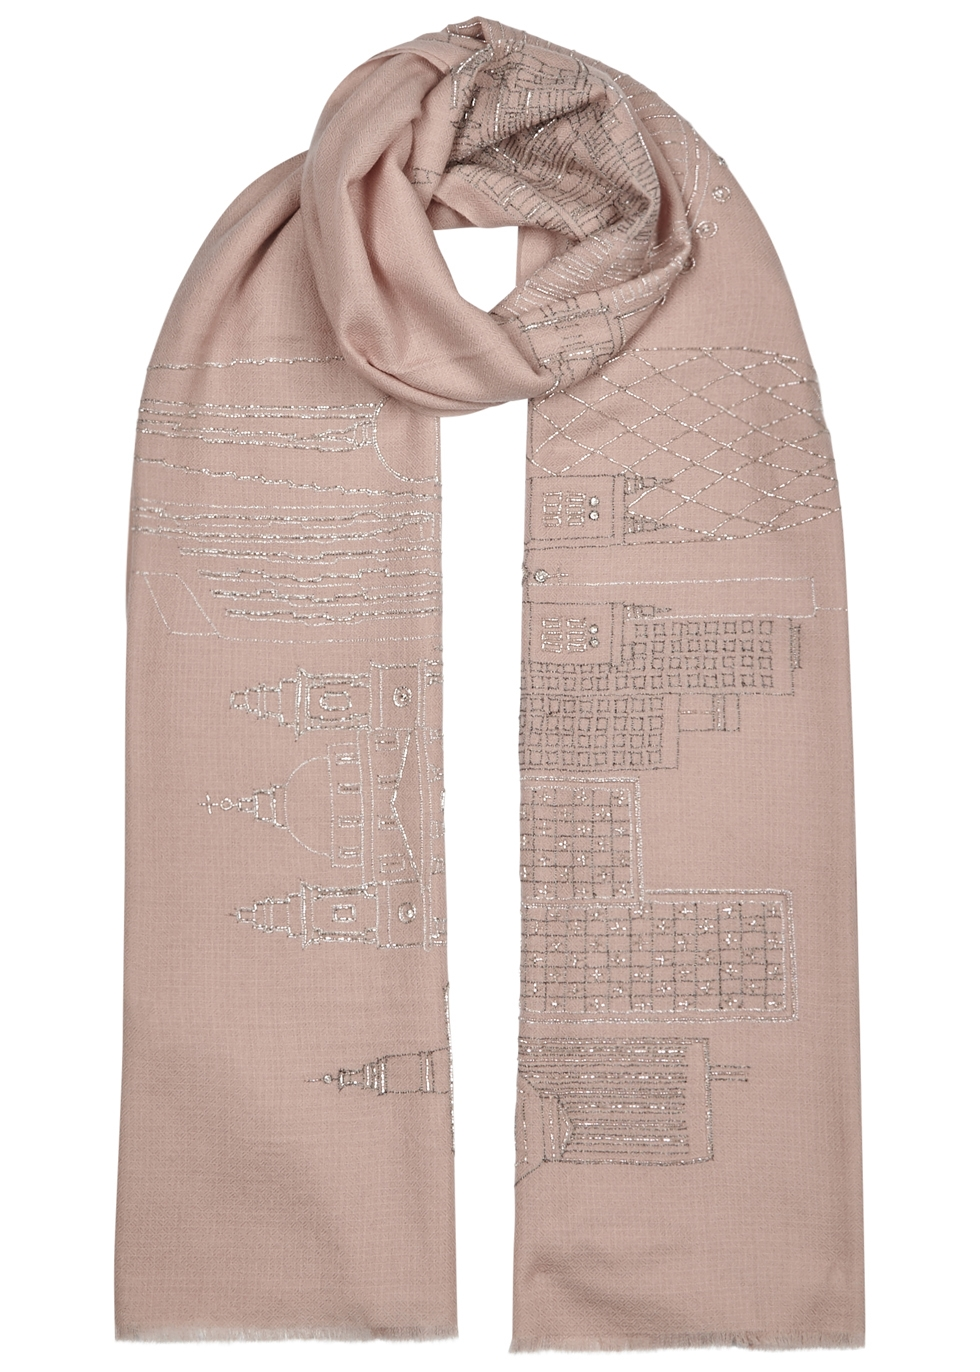 London Skyline merino wool scarf - Janavi